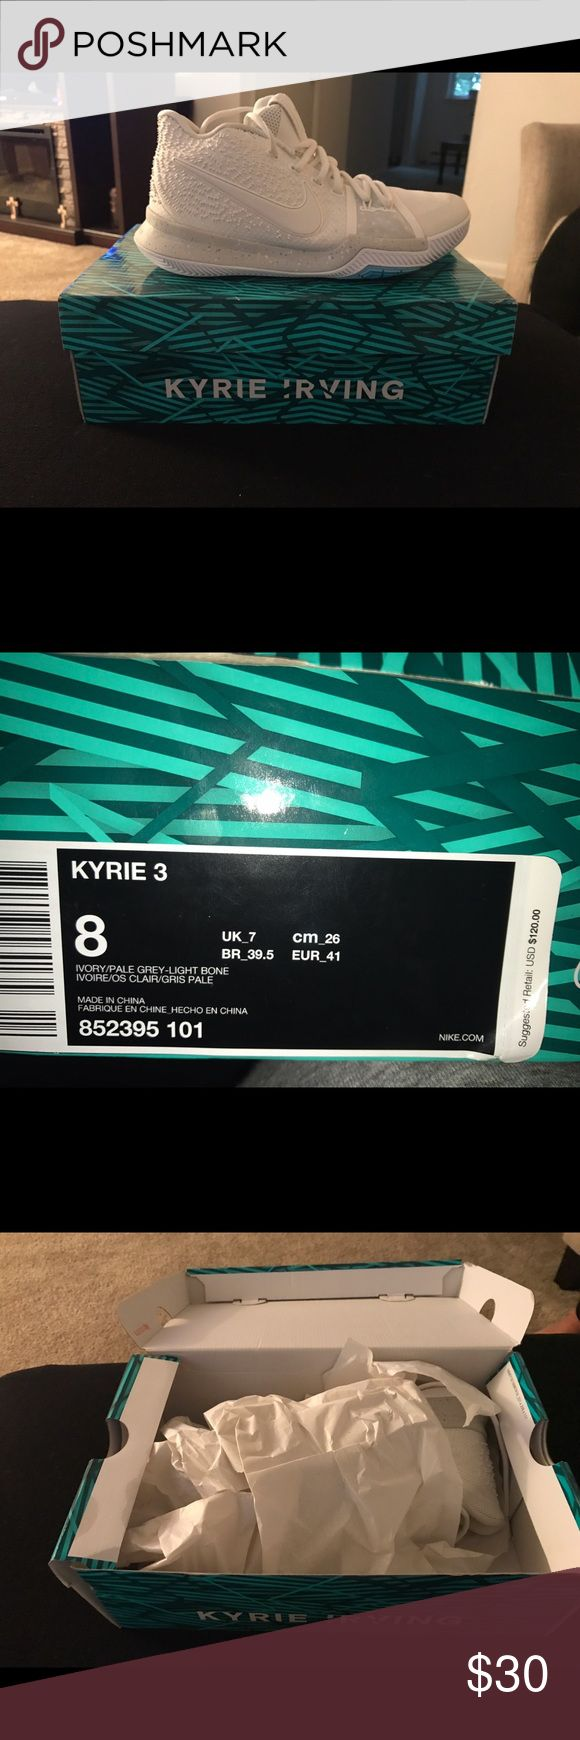 Kyrie 3 size 8 basketball sneakers Kyrie 3 basketball sneakers likely worn . Comes in original box . Really really good condition. Nike Shoes Sneakers